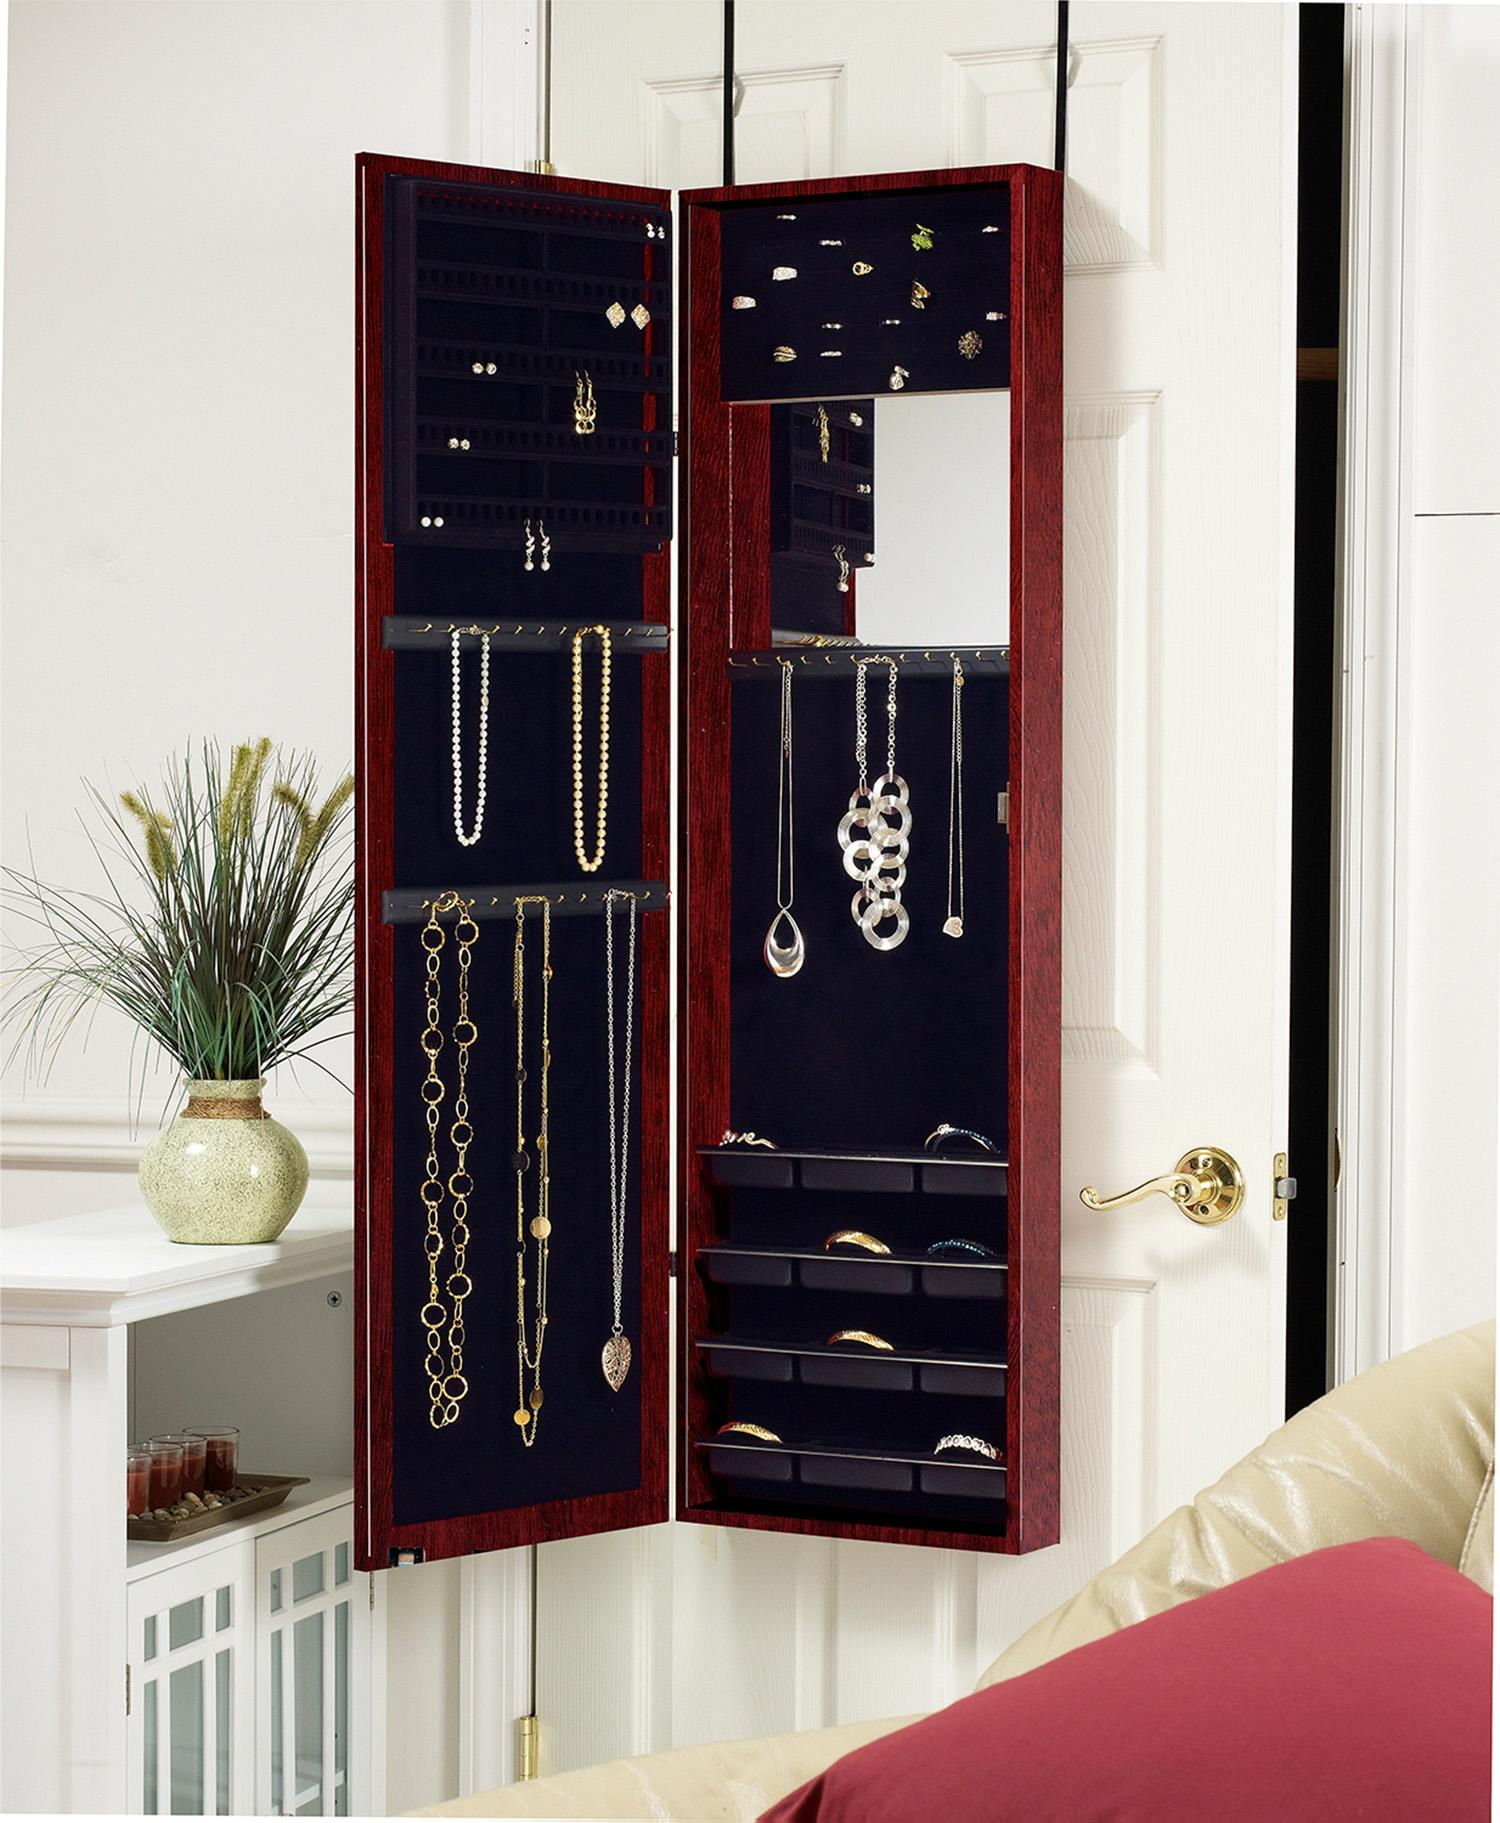 Attirant Plaza Astoria Wall Or Over The Door Jewelry Armoire